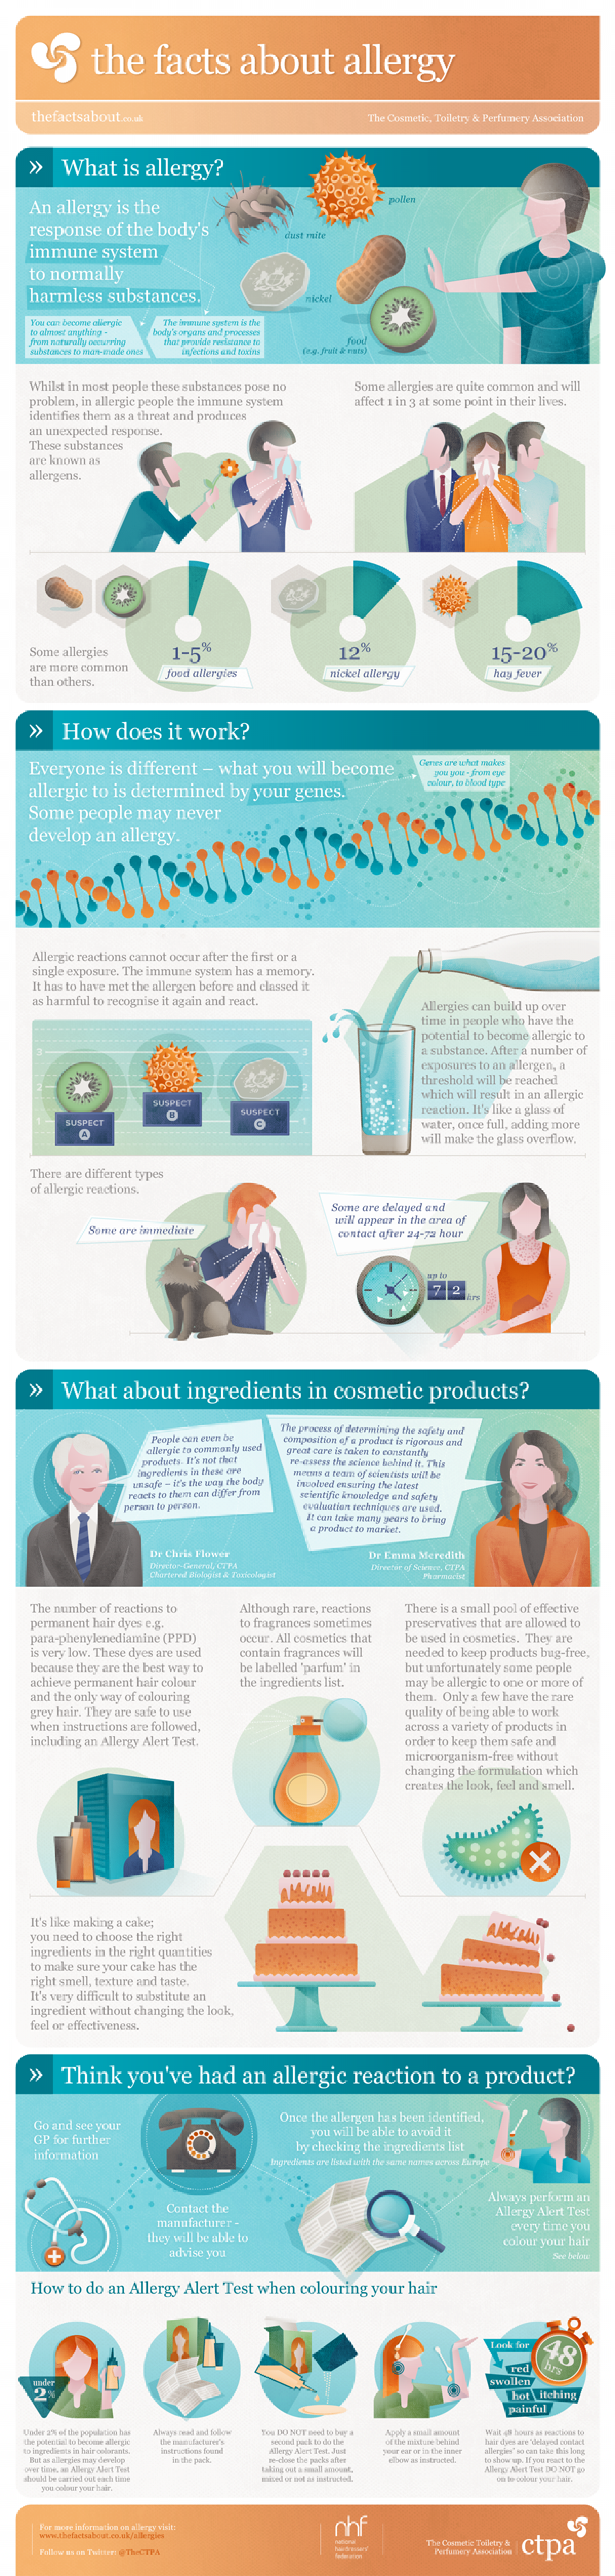 The Facts About Allergy Infographic